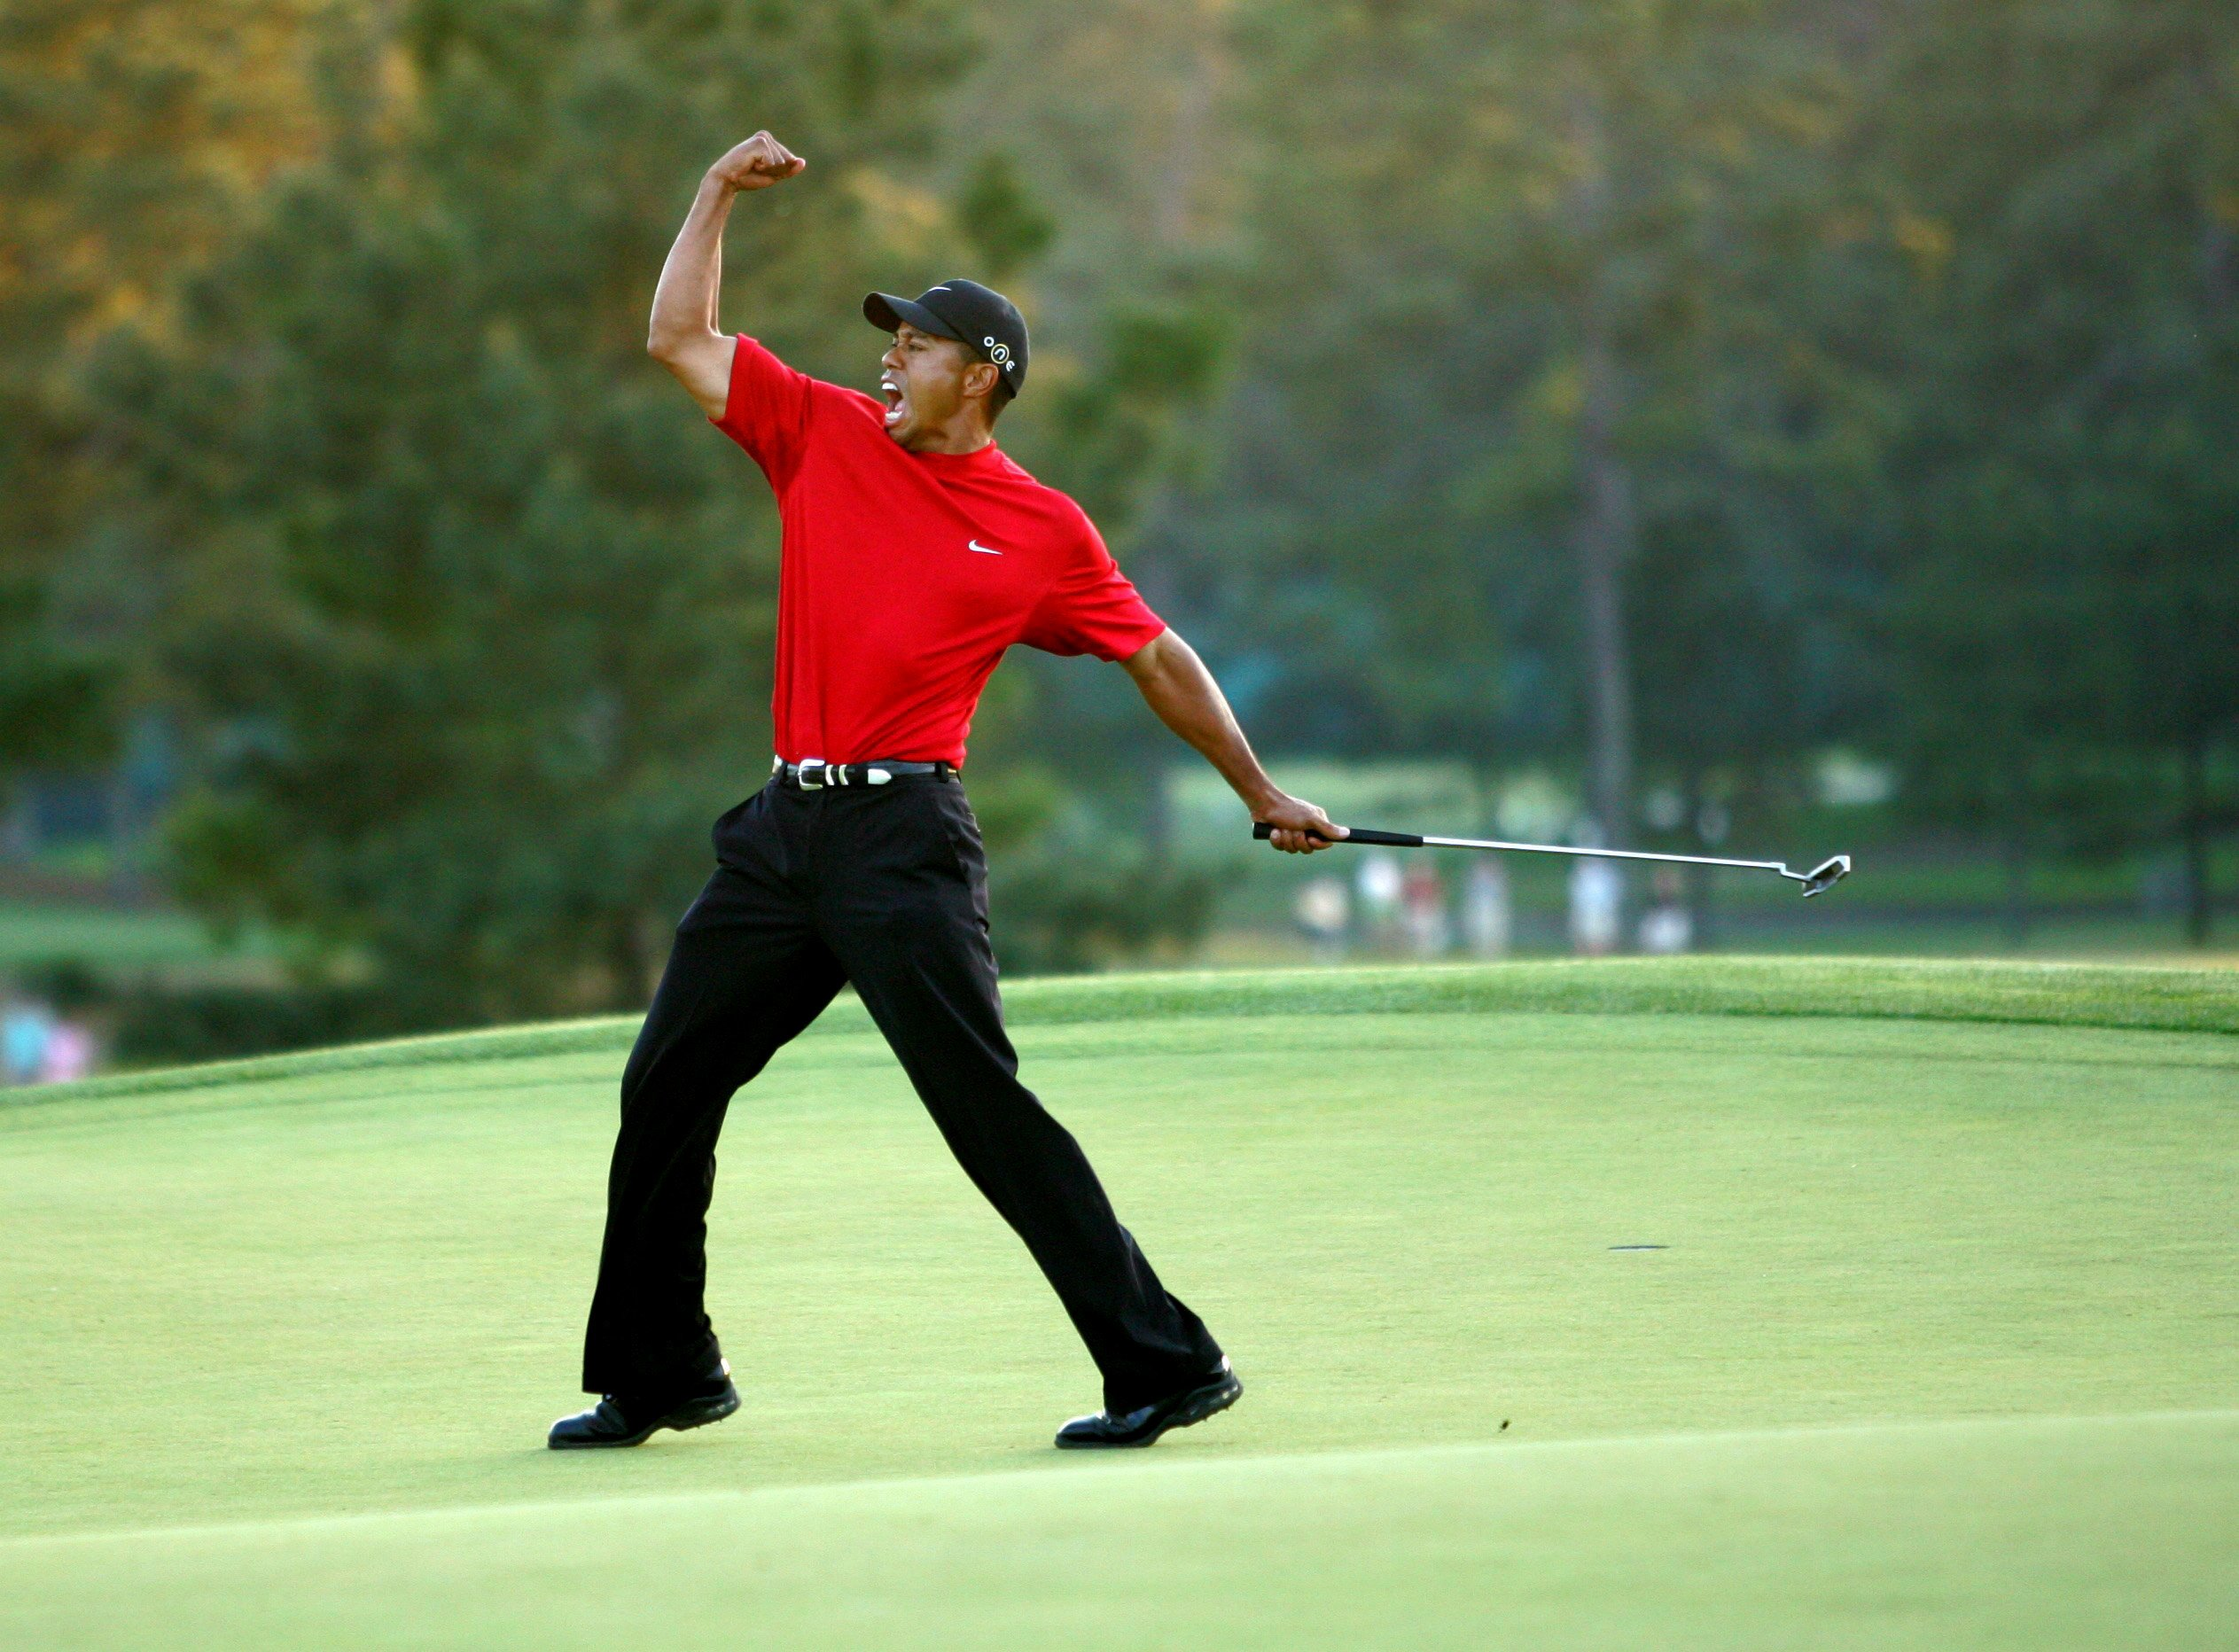 Tiger Woods Poster Photo Limited Print Celebrity Golf PGA Champion Sexy Size 16x20 #2